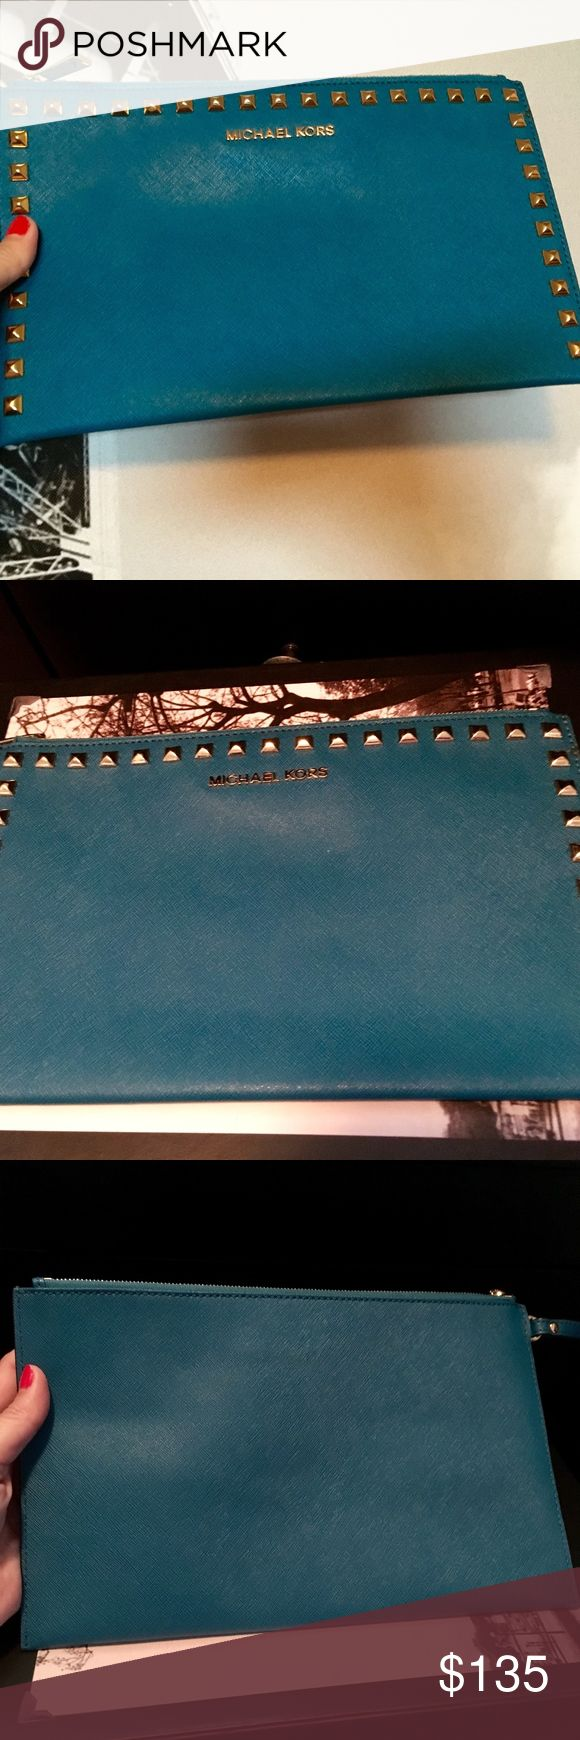 Michael Kors Large Studded Clutch in Turquoise Gorgeous turquoise saffiano leather studded clutch with wristlet strap. Gold studs, inside slip pocket, plus card slots! This was hardly used at all. Looks new. Michael Kors Bags Clutches & Wristlets